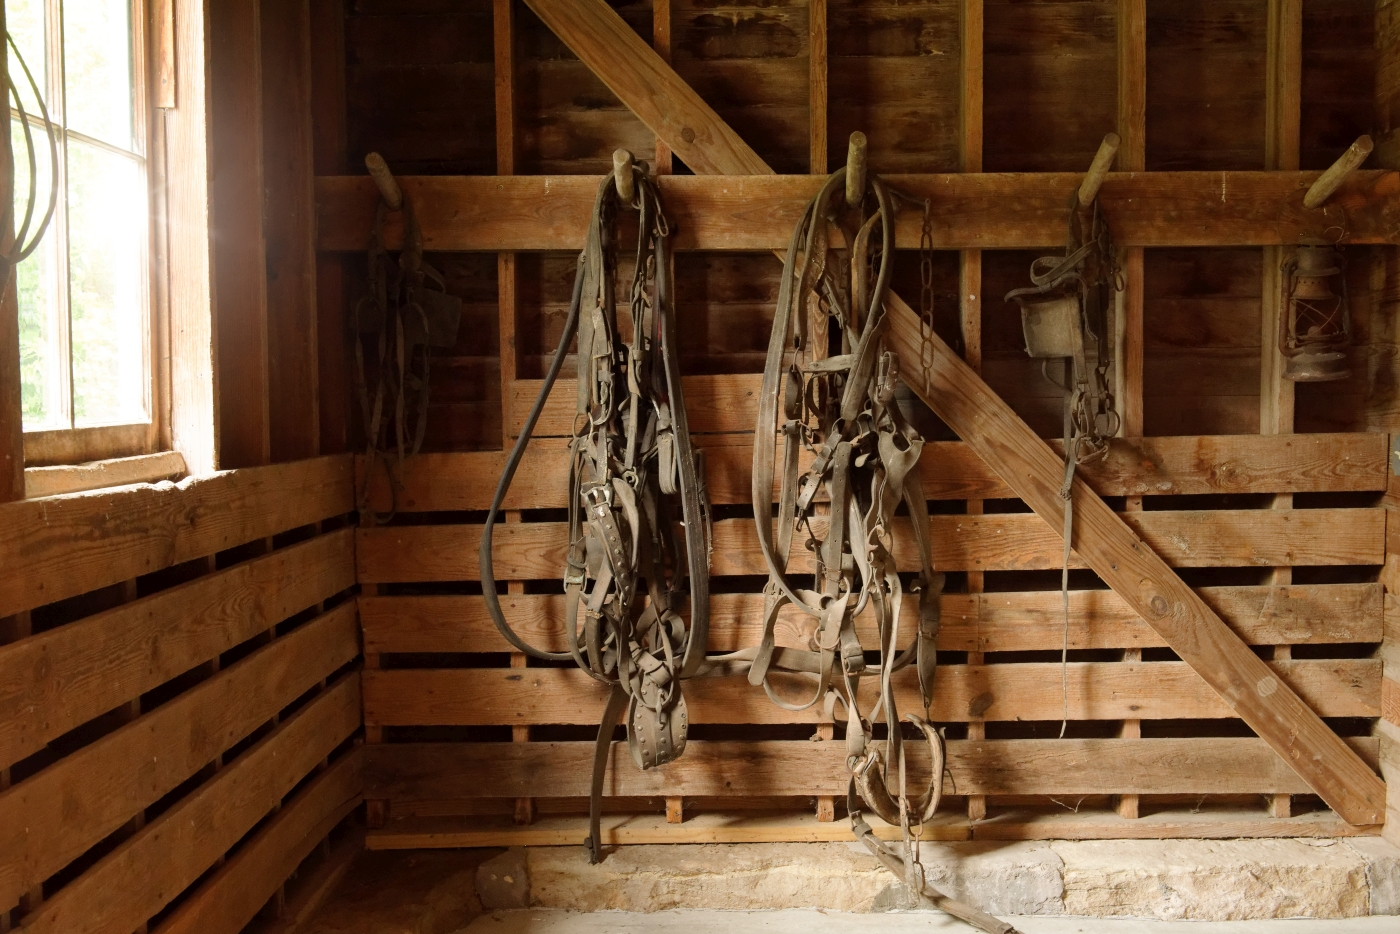 Leather harnesses in the white barn